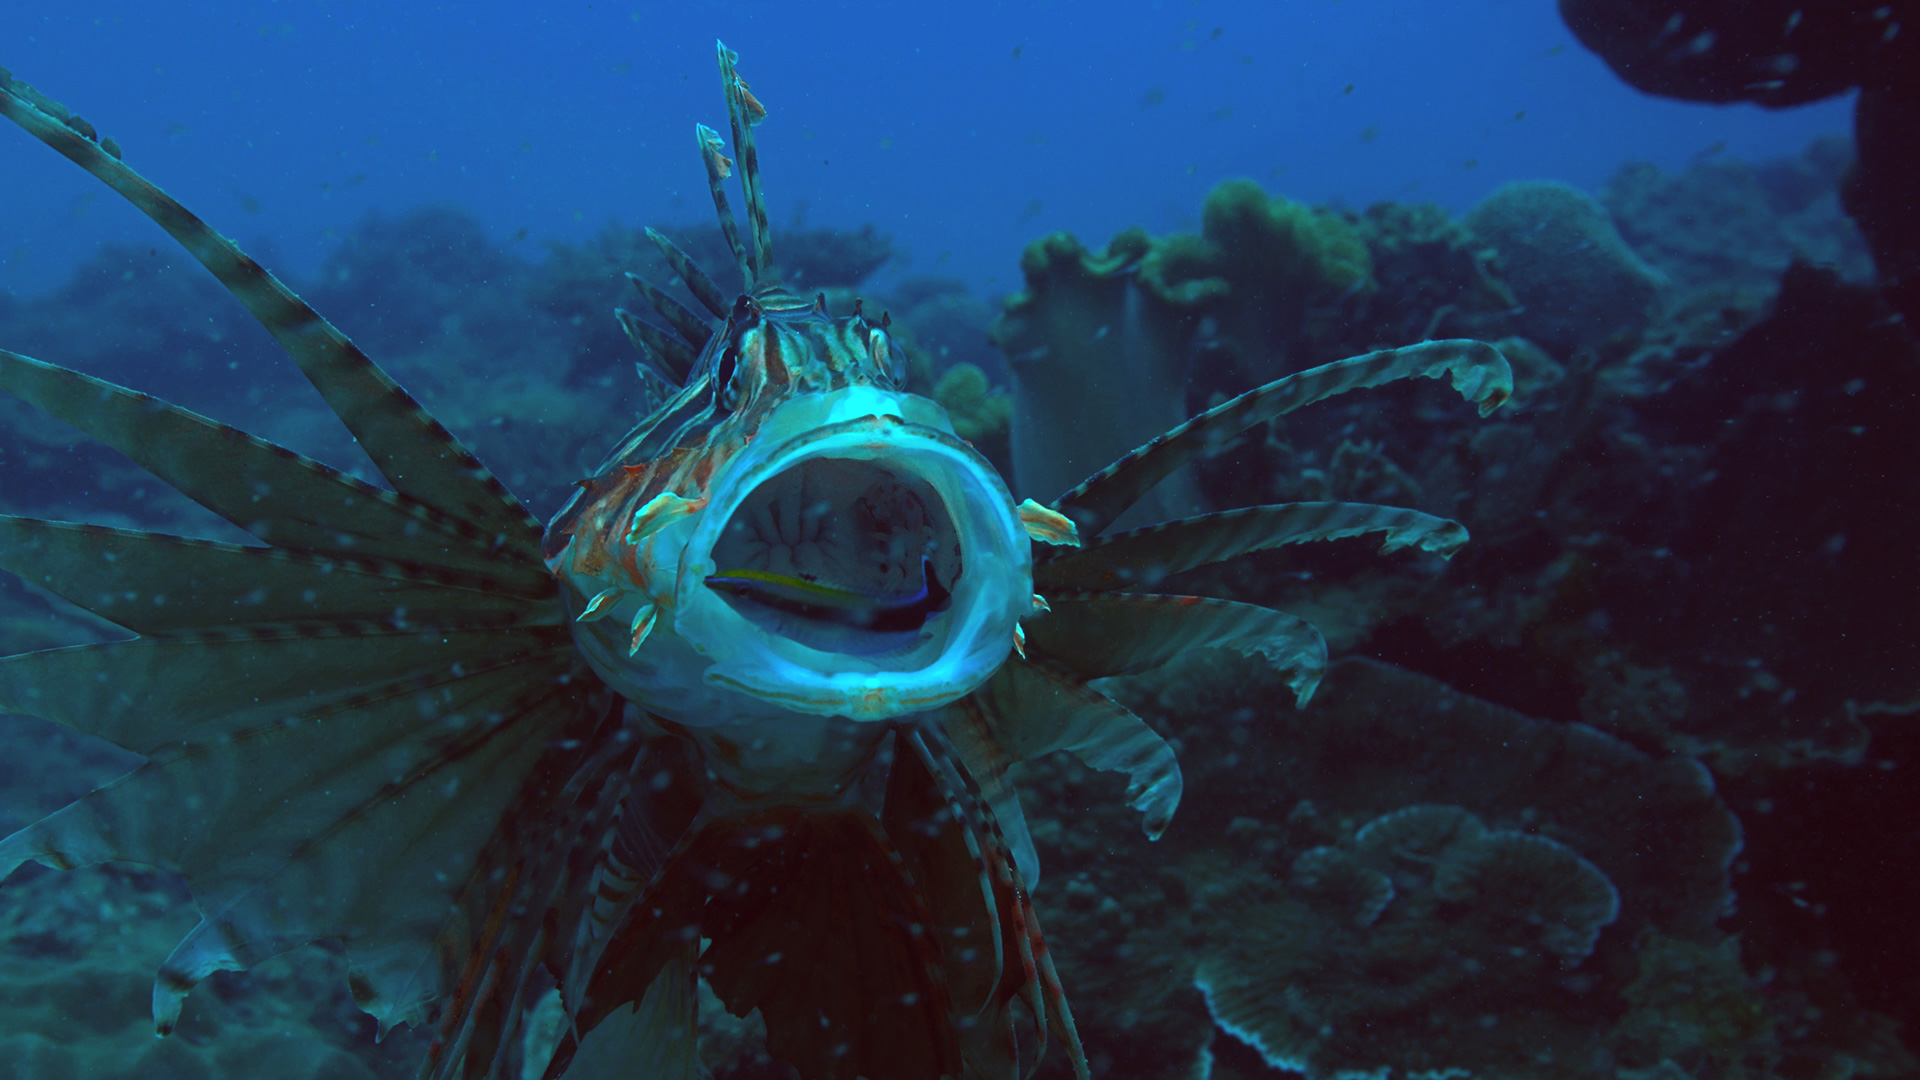 Bluestreak wrasse cleaning lionfish mouth at Kenting, Taiwan.